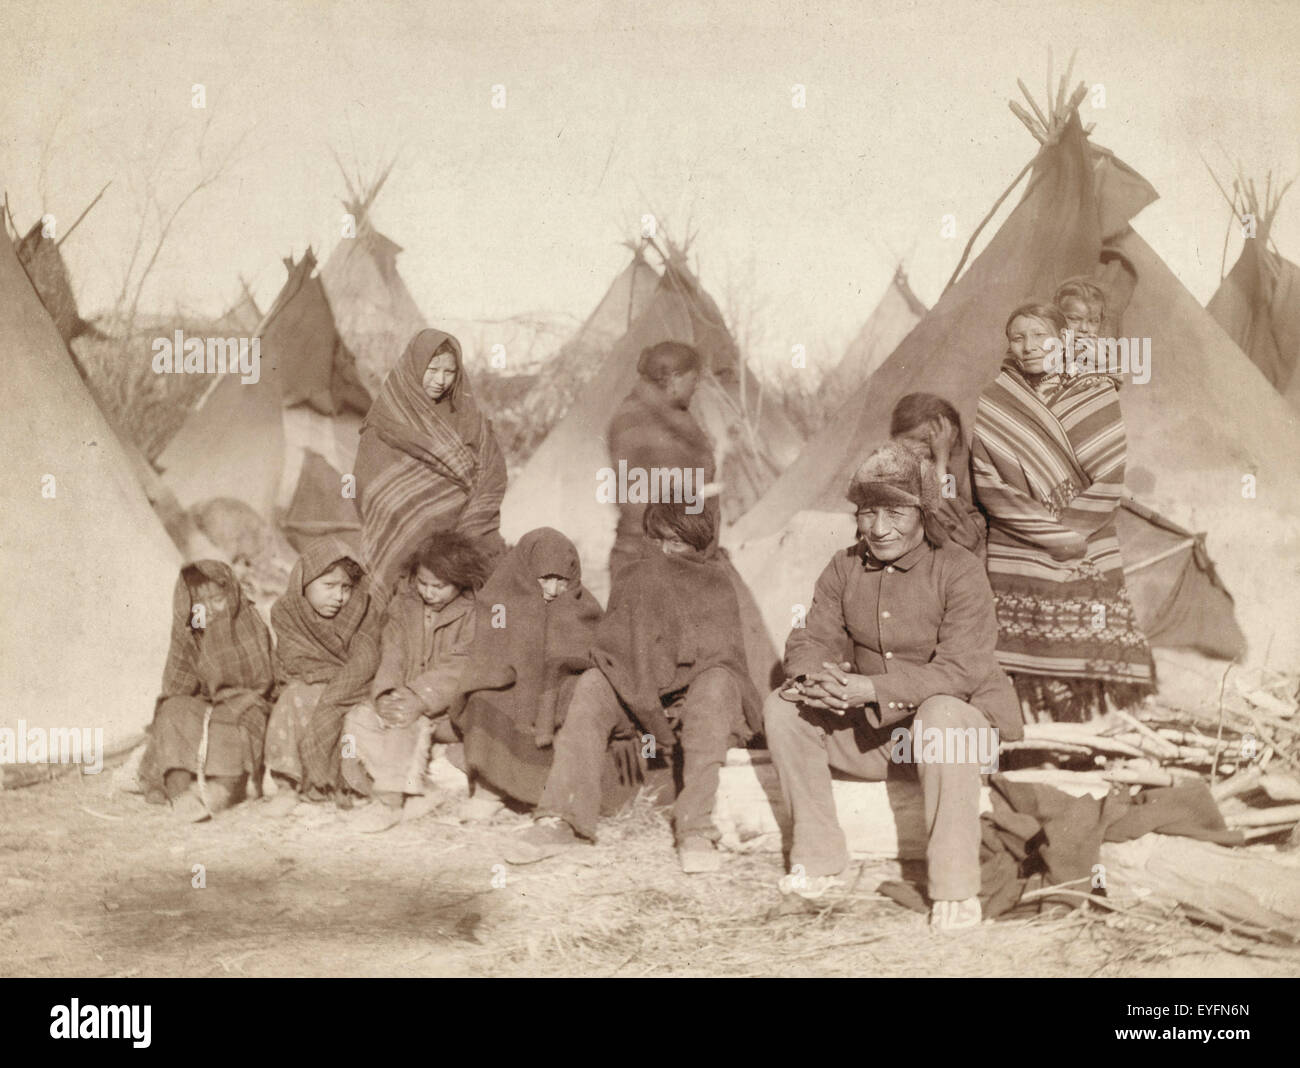 Survivors of Wounded Knee Massacre (Title: What's left of Big Foot's band). 1891 - Stock Image